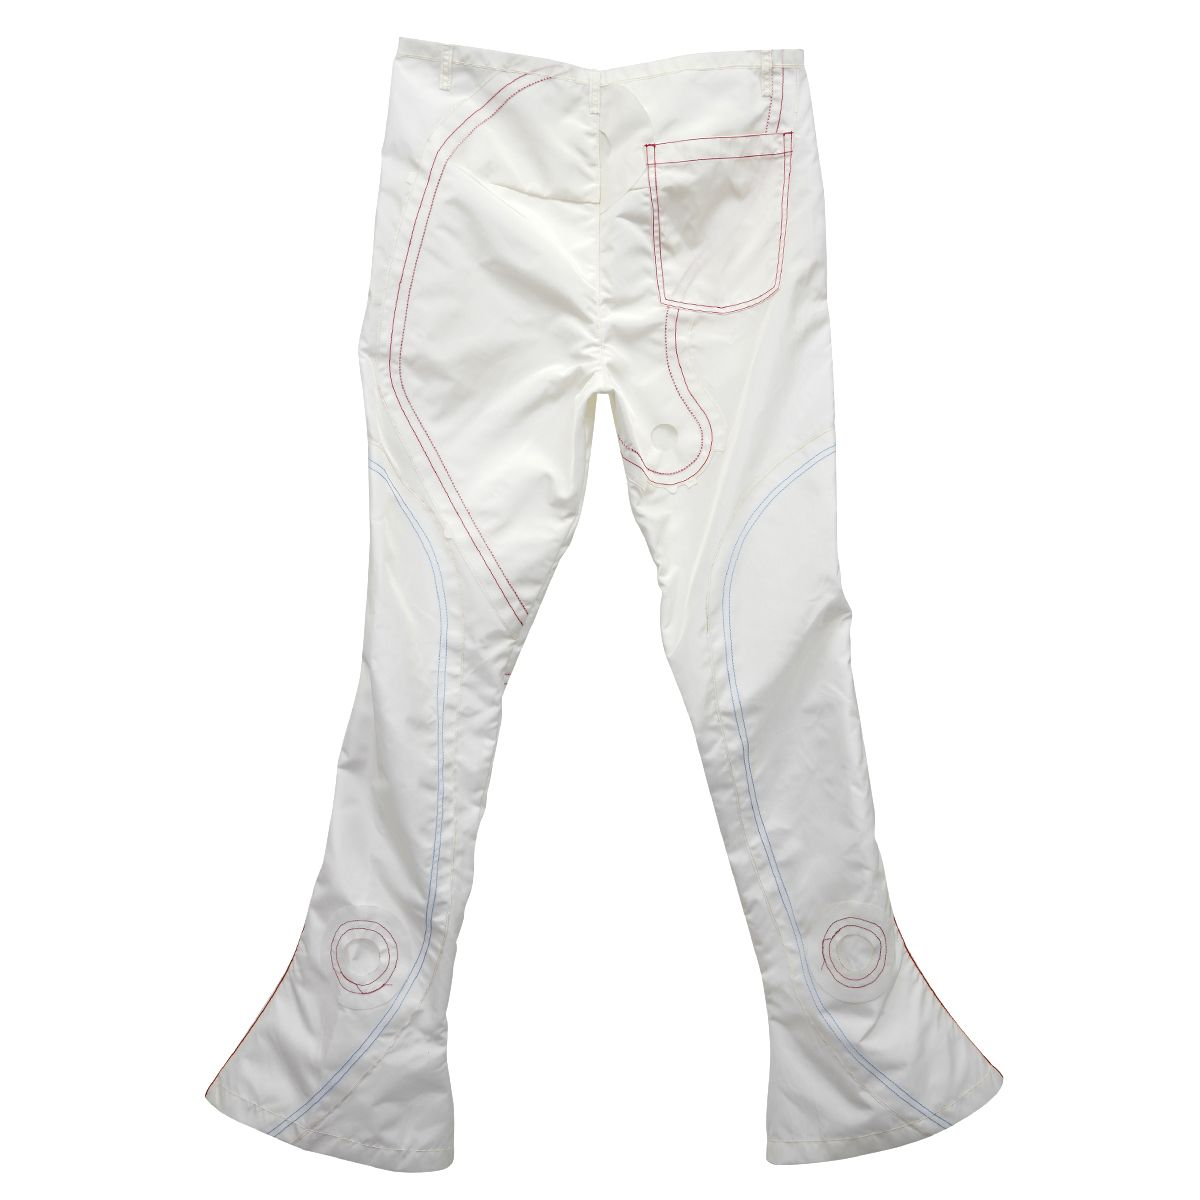 KANGHYUK READYMADE AIRBAG PATCHED FLARE TROUSER 1 / OFF WHITE